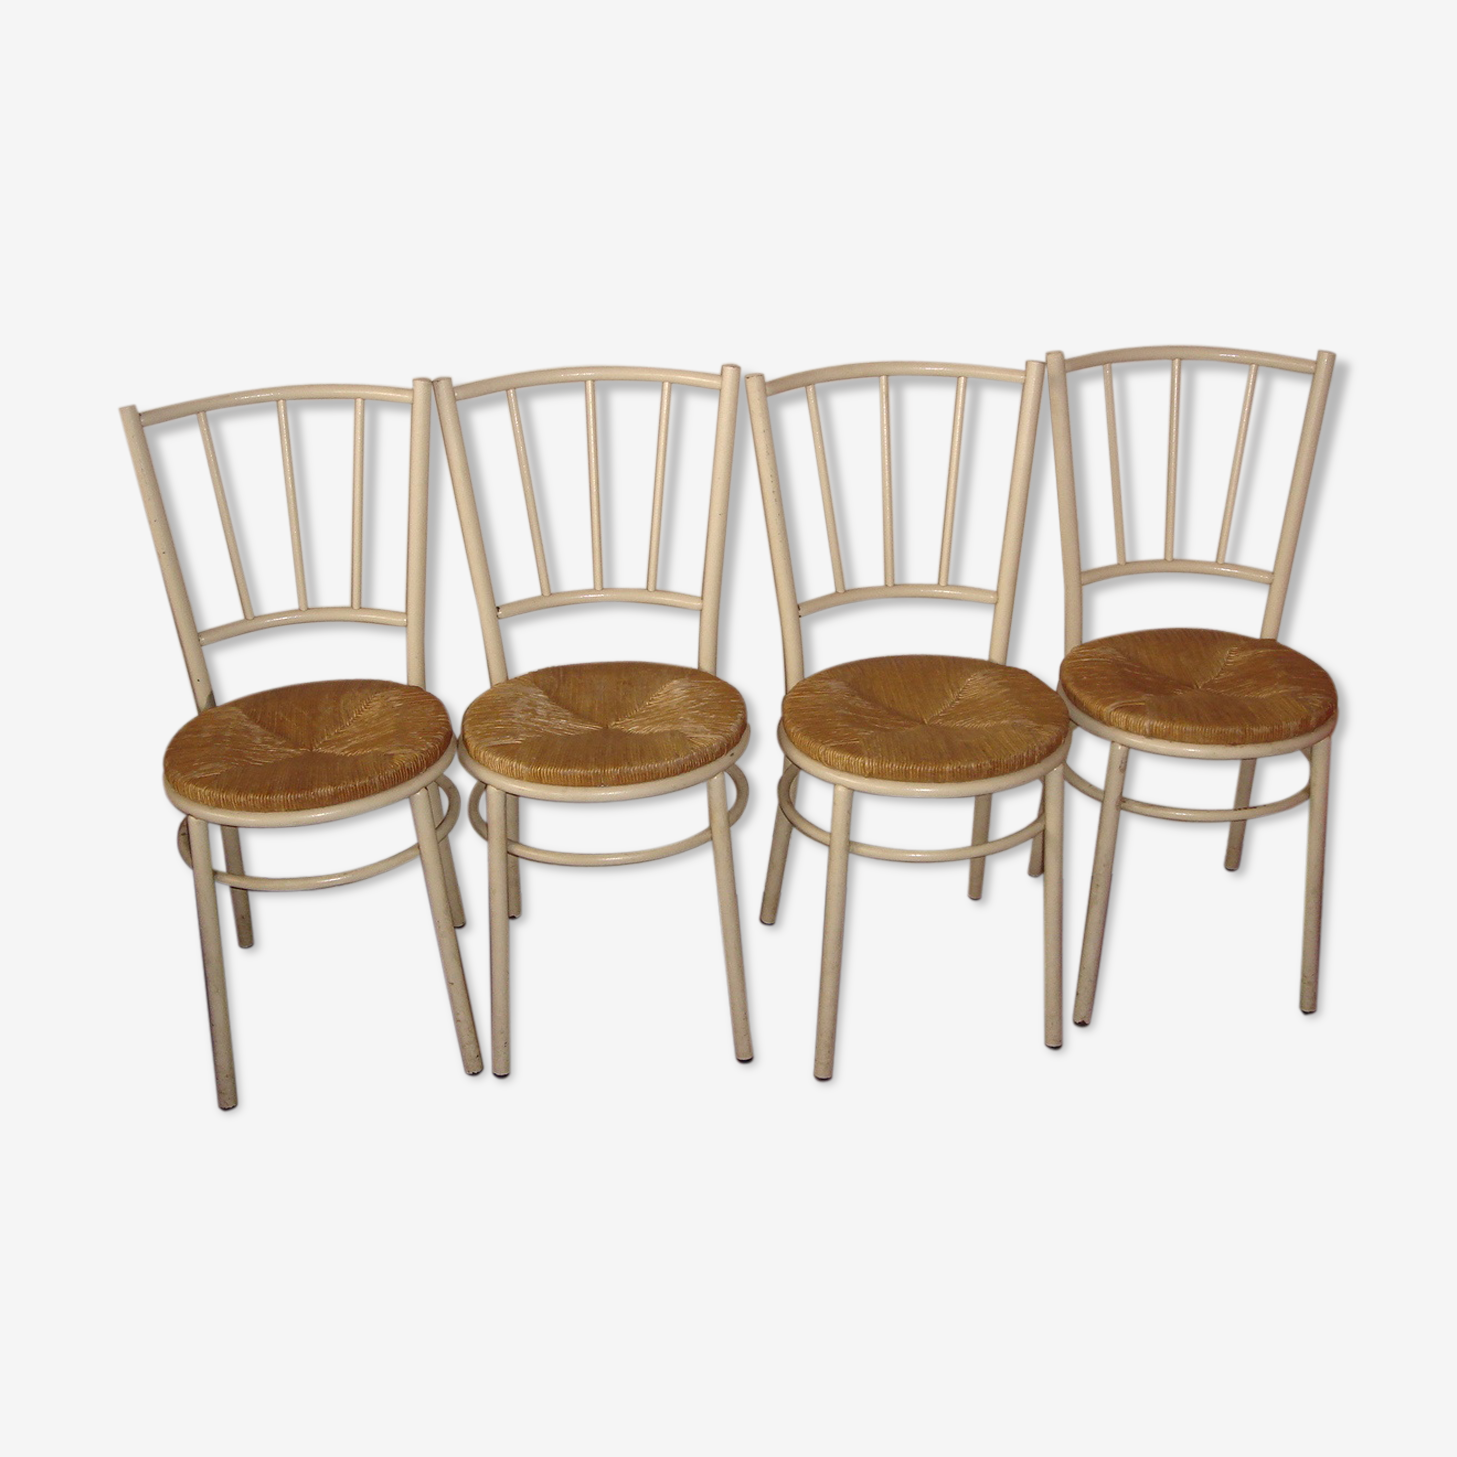 4 Bistro metal and straw seat chairs